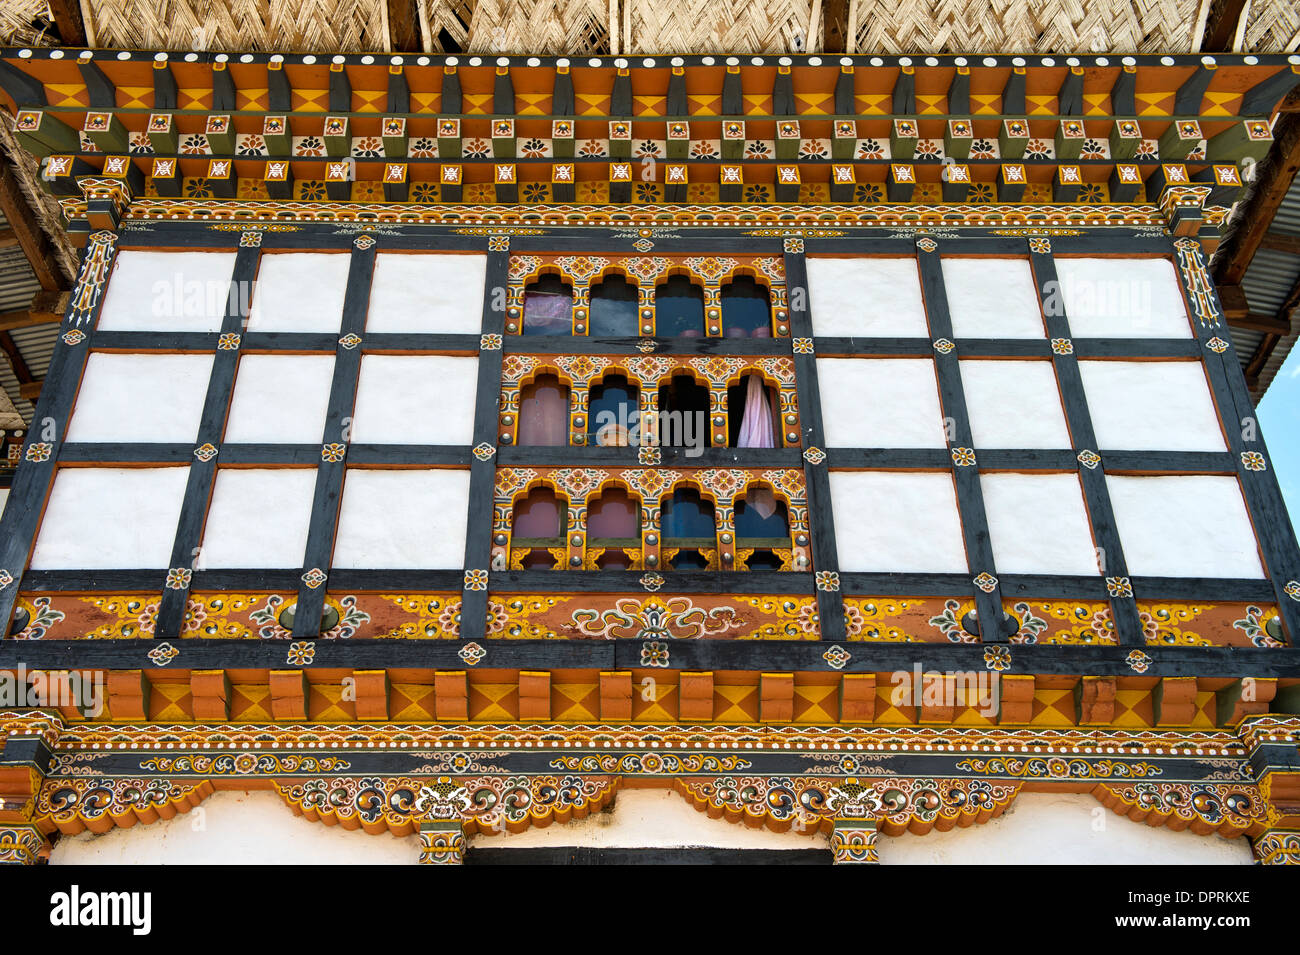 Colorful facade of a house in typical Bhutanese architectural style, Thimphu, Bhutan - Stock Image